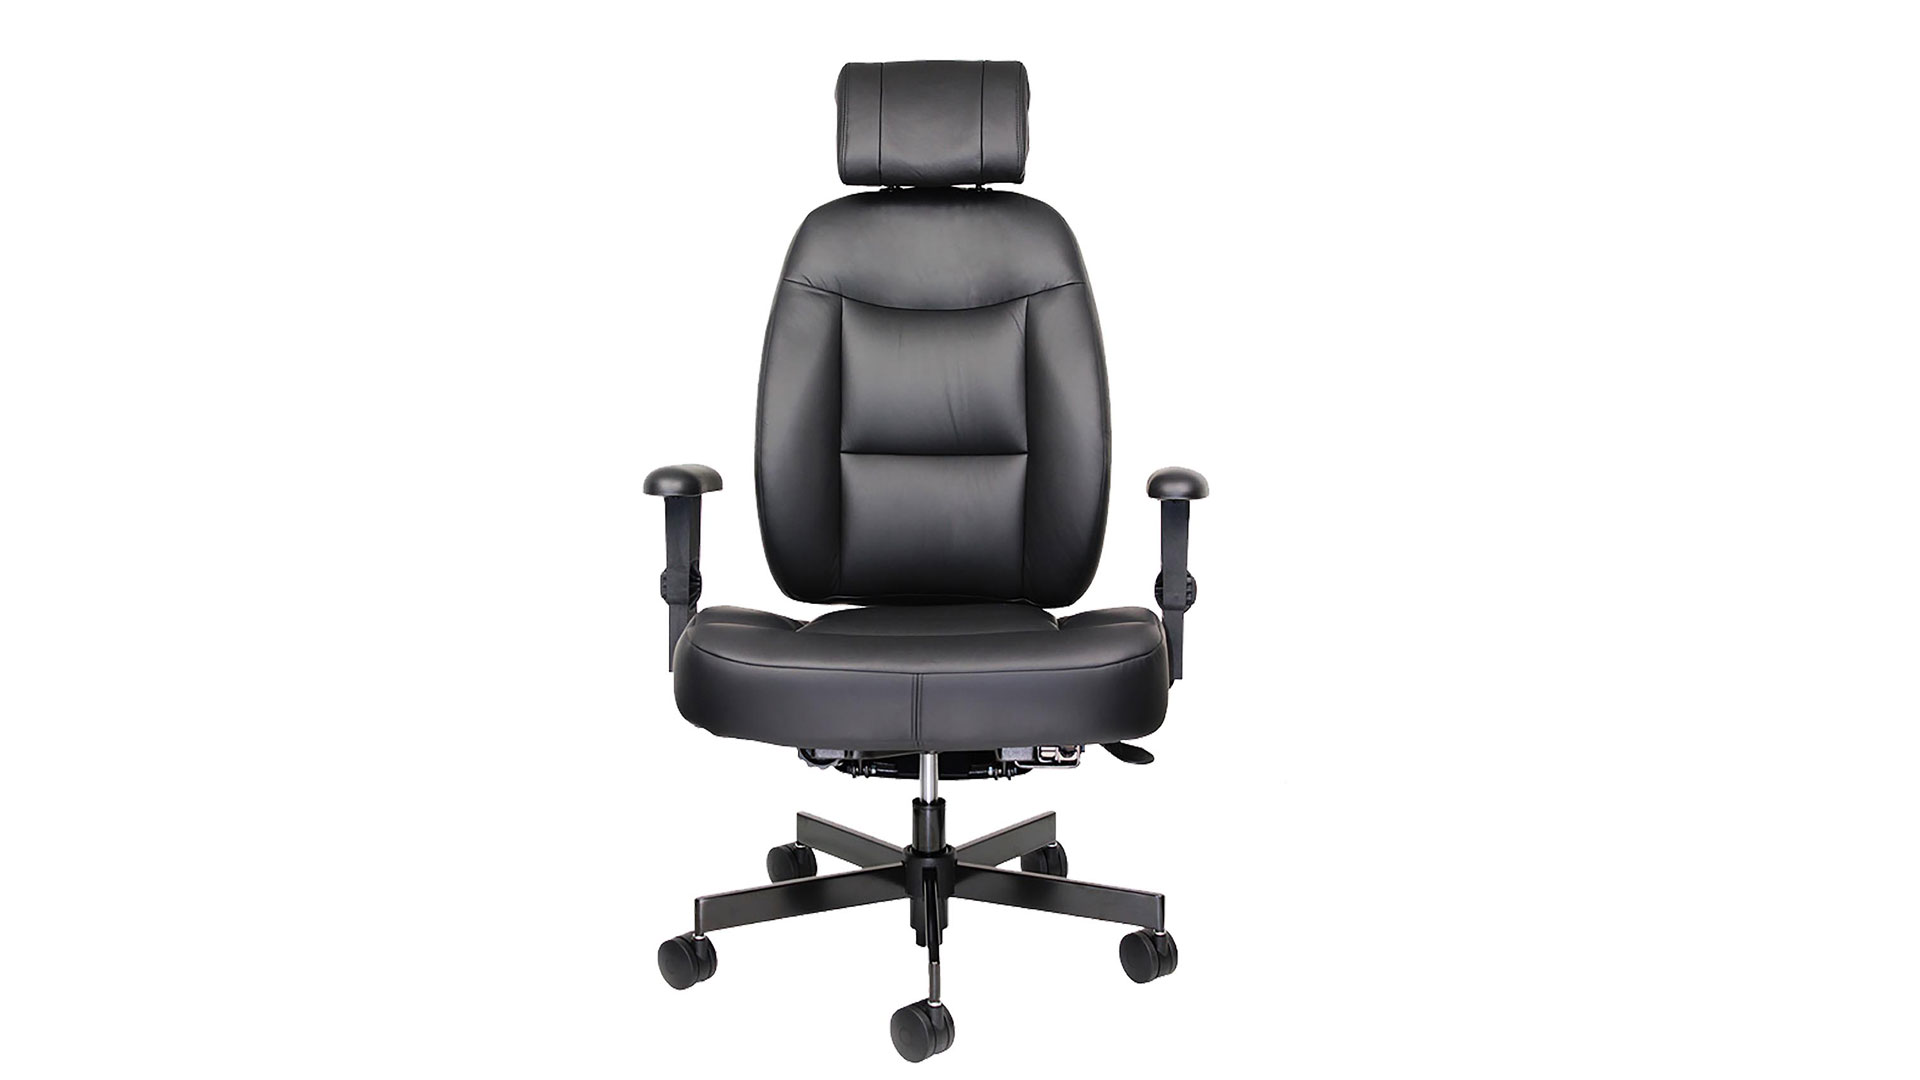 Office Chair By Recaro Style And Comfort